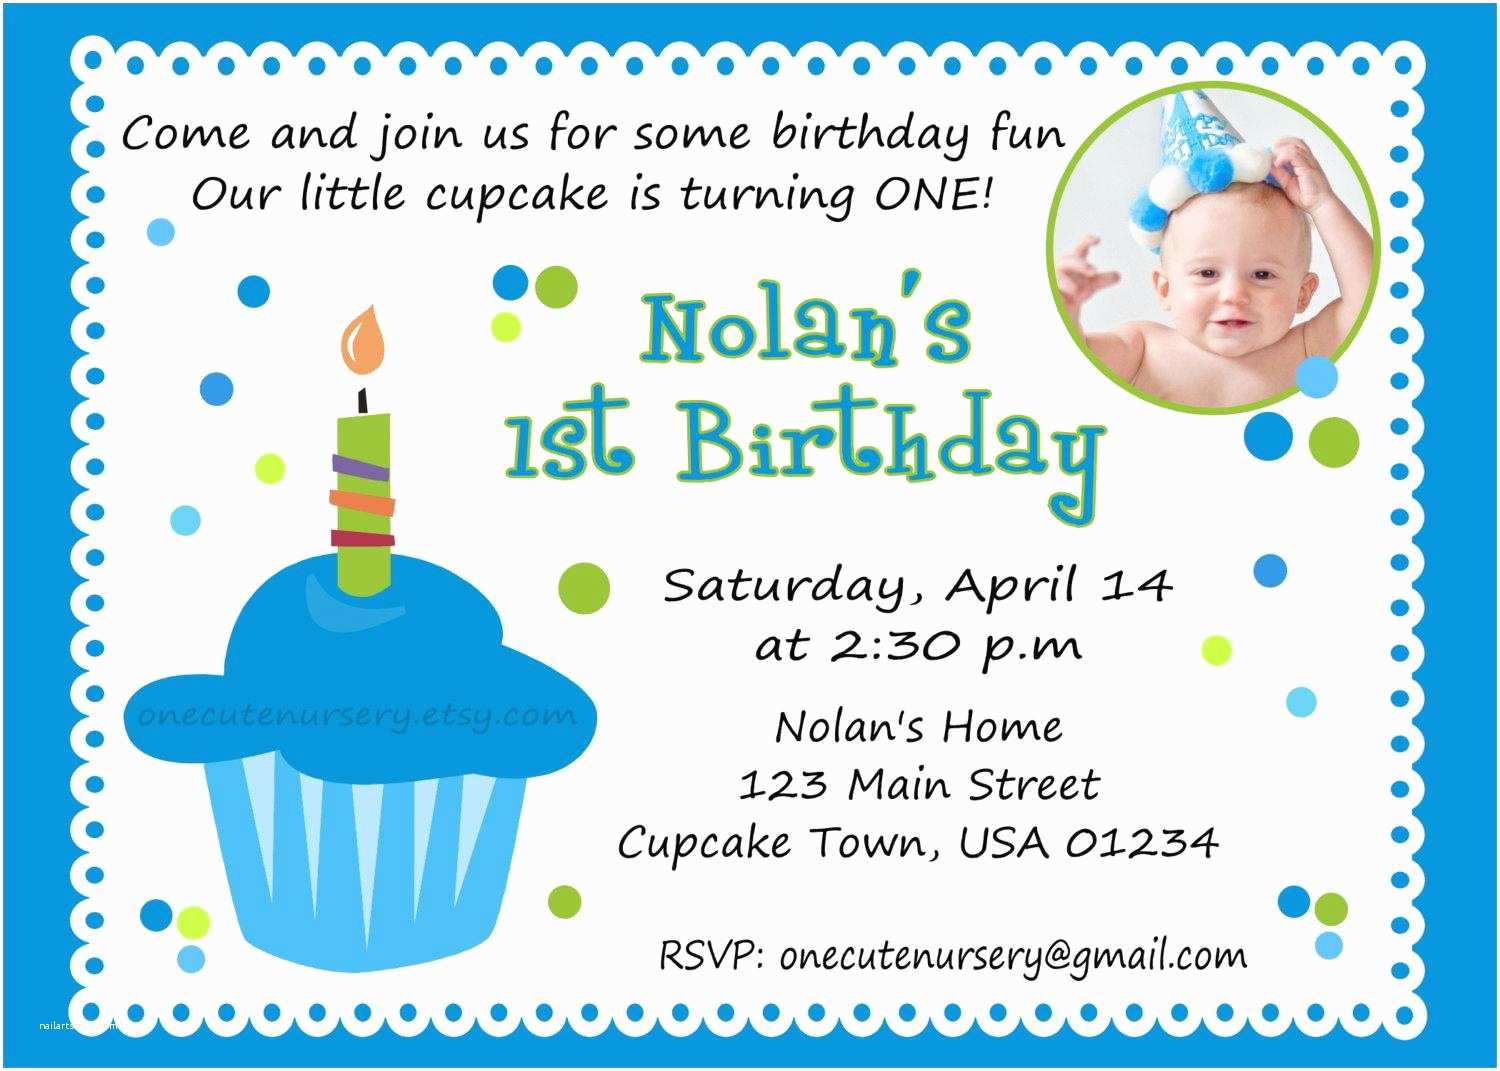 Sample Birthday Invitation Circus Birthday Invitations Sample